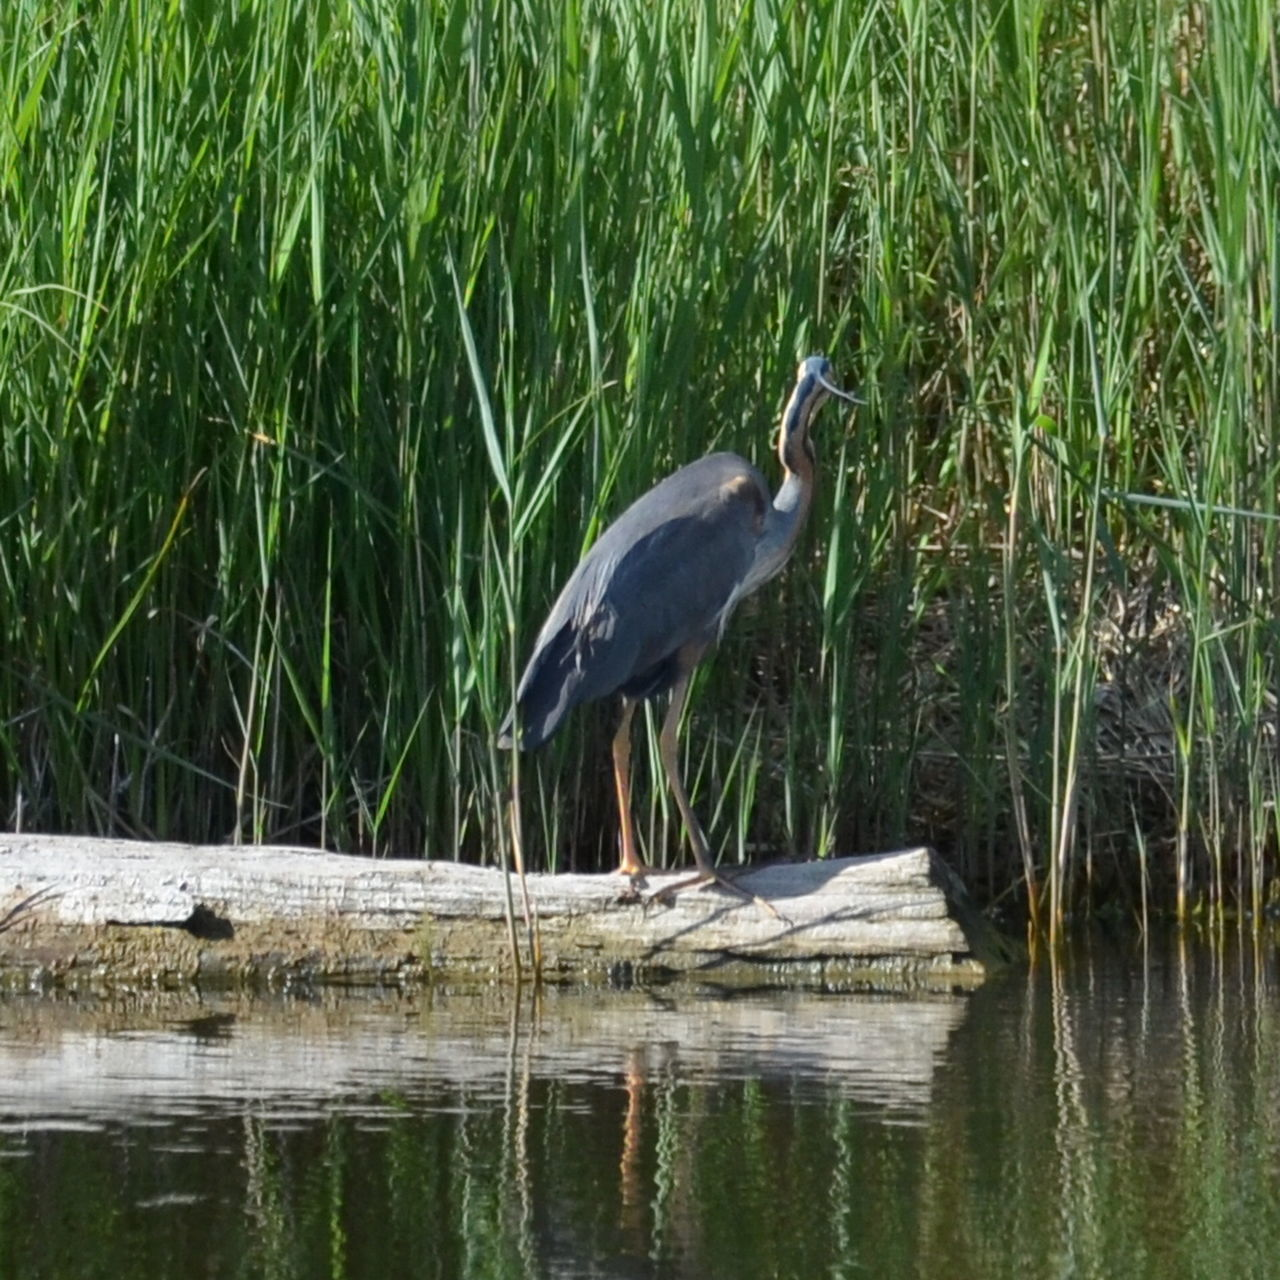 heron, one animal, animal themes, great blue heron, bird, animals in the wild, gray heron, lake, animal wildlife, water, reflection, waterfront, lakeshore, day, nature, perching, outdoors, no people, plant, grass, growth, beauty in nature